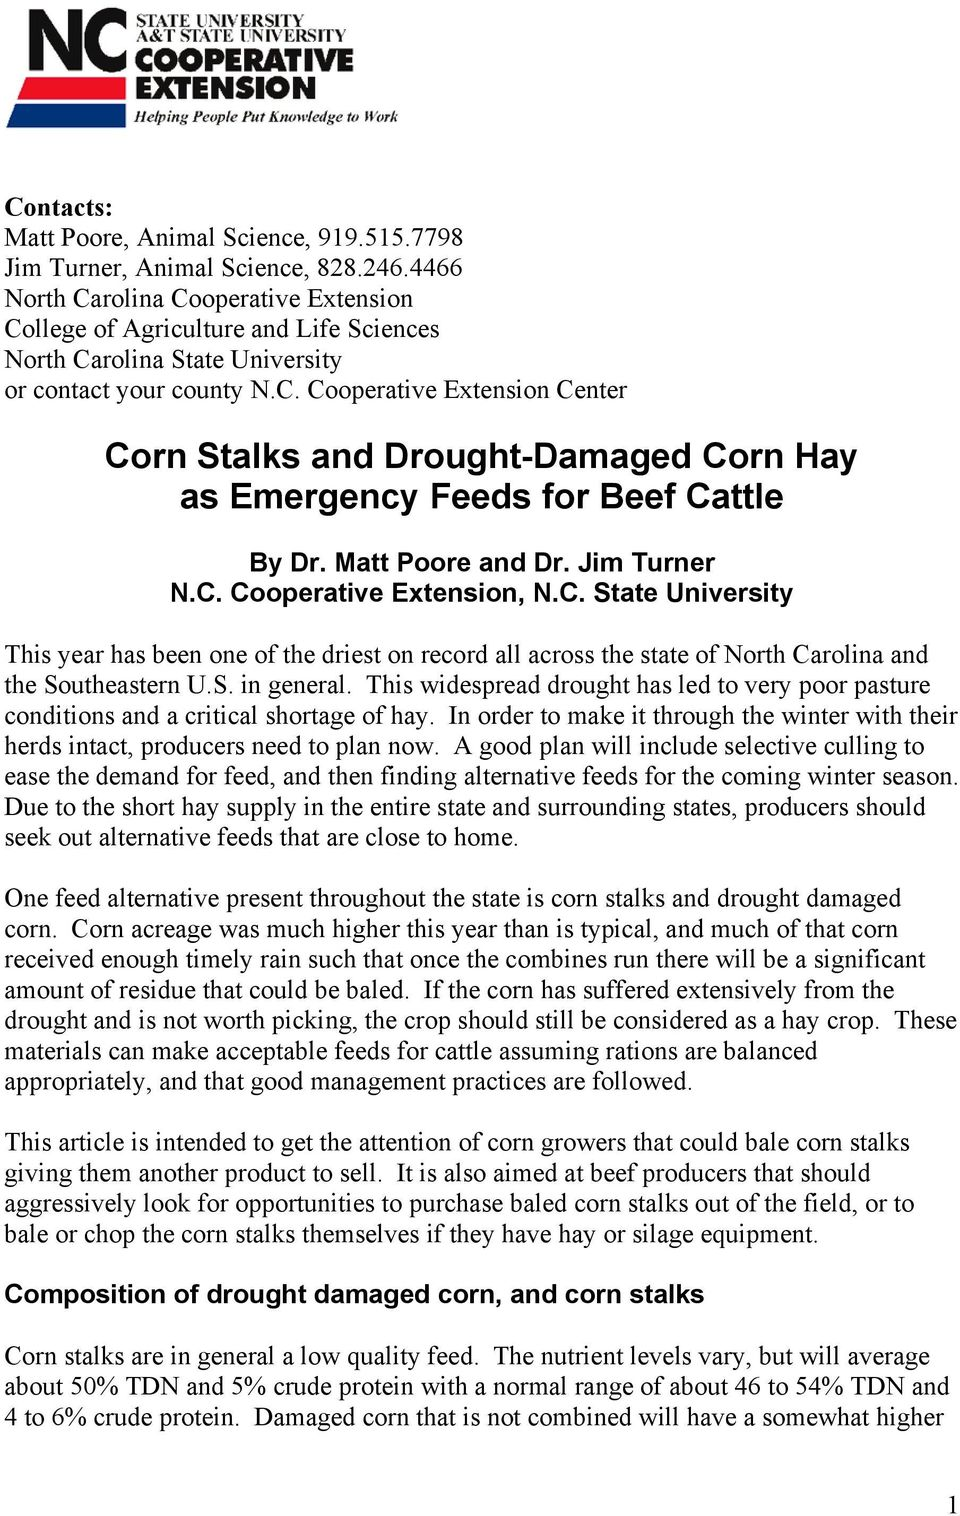 Matt Poore and Dr. Jim Turner N.C. Cooperative Extension, N.C. State University This year has been one of the driest on record all across the state of North Carolina and the Southeastern U.S. in general.